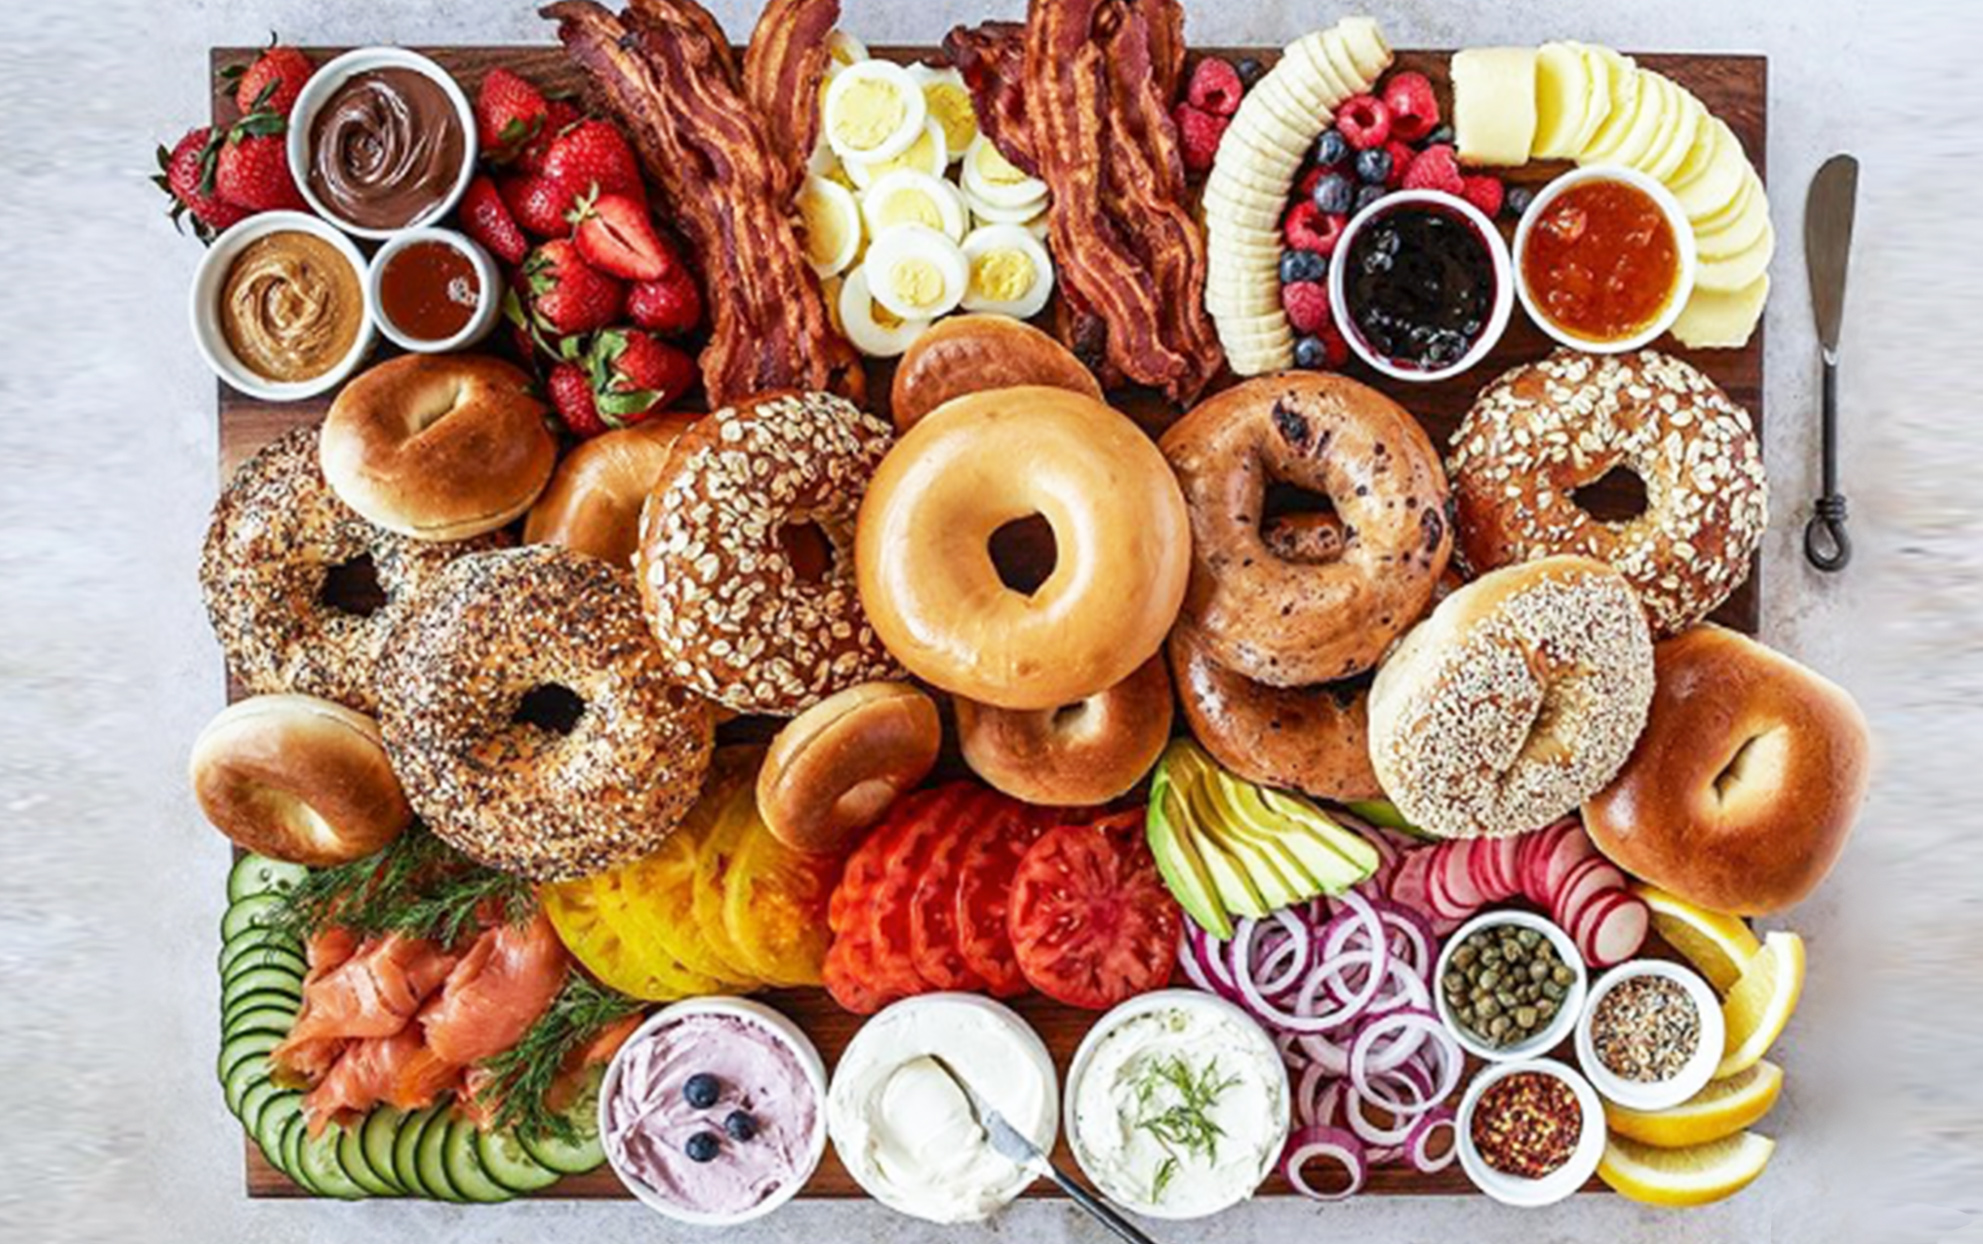 Brunch Boards: The Newest Food Trend Sweeping Instagram